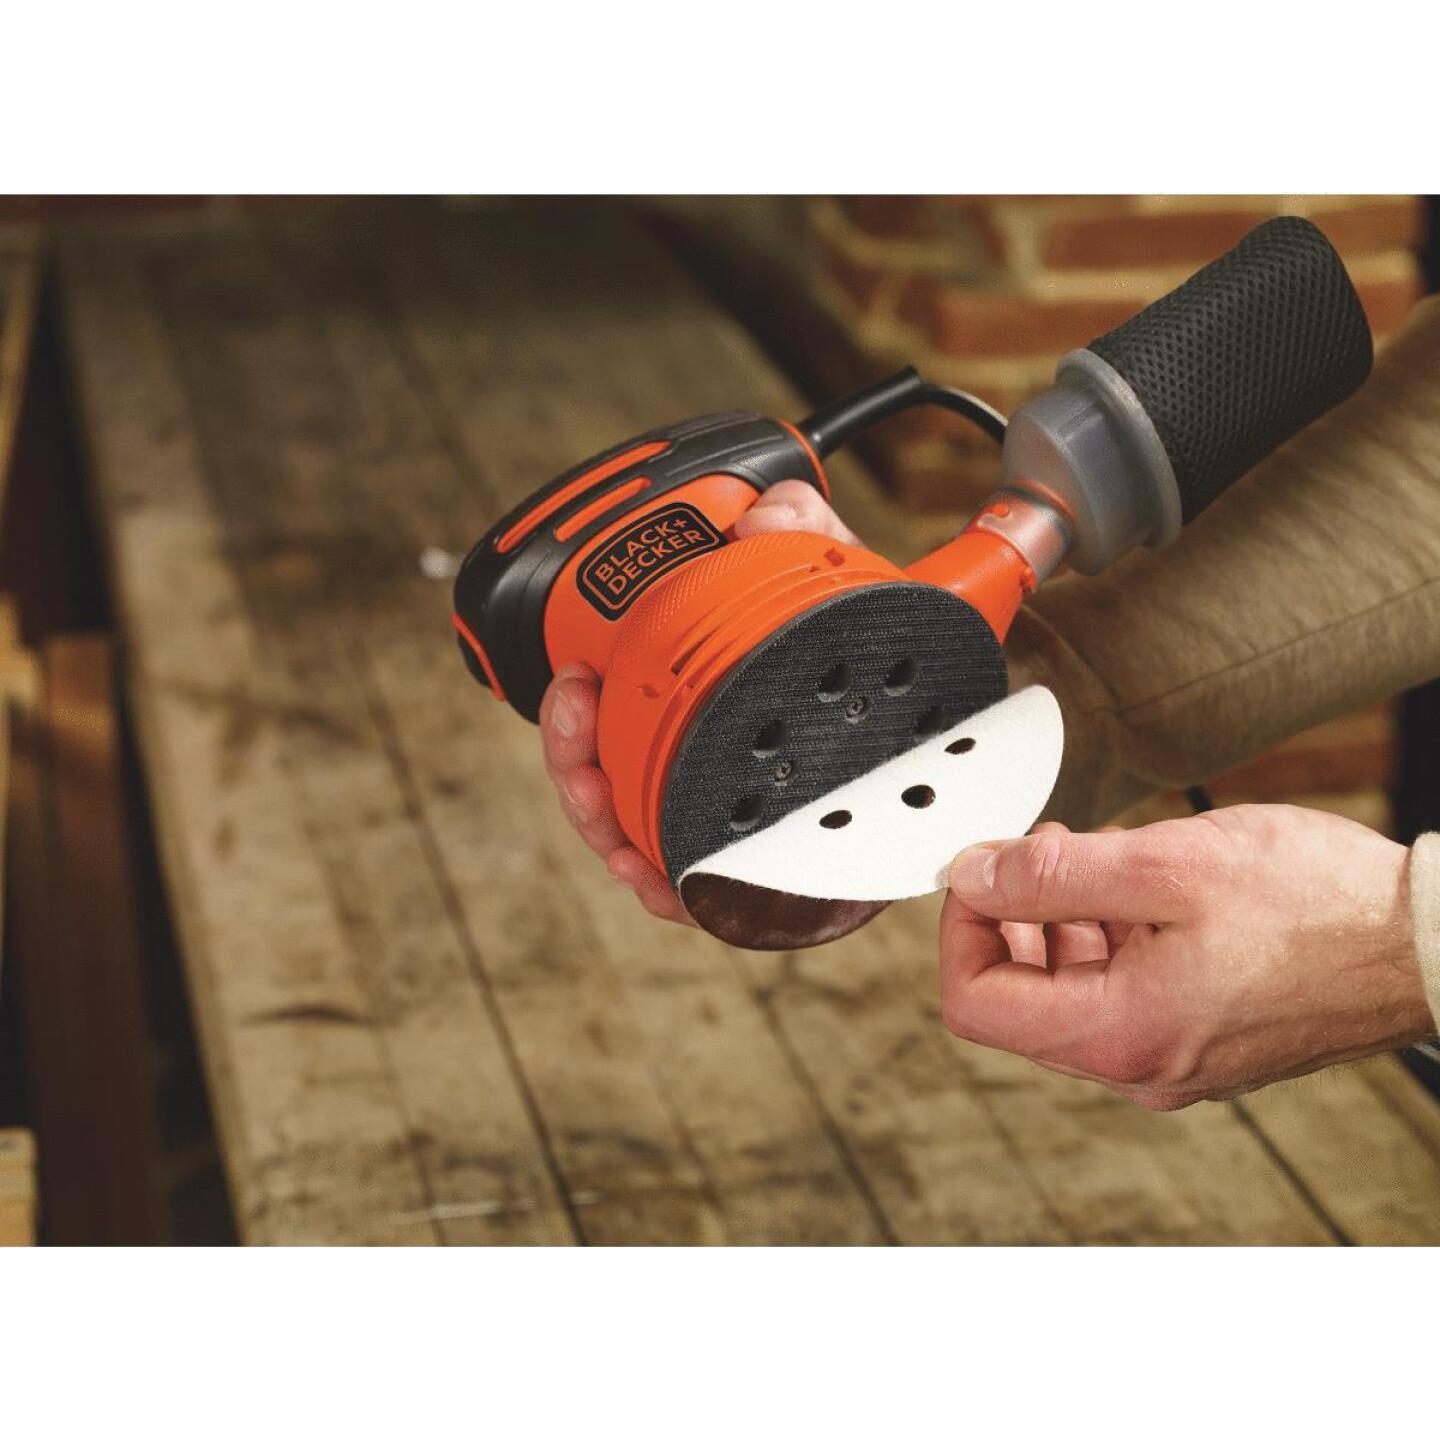 Black & Decker 5 In. 2.0A Finish Sander Image 5